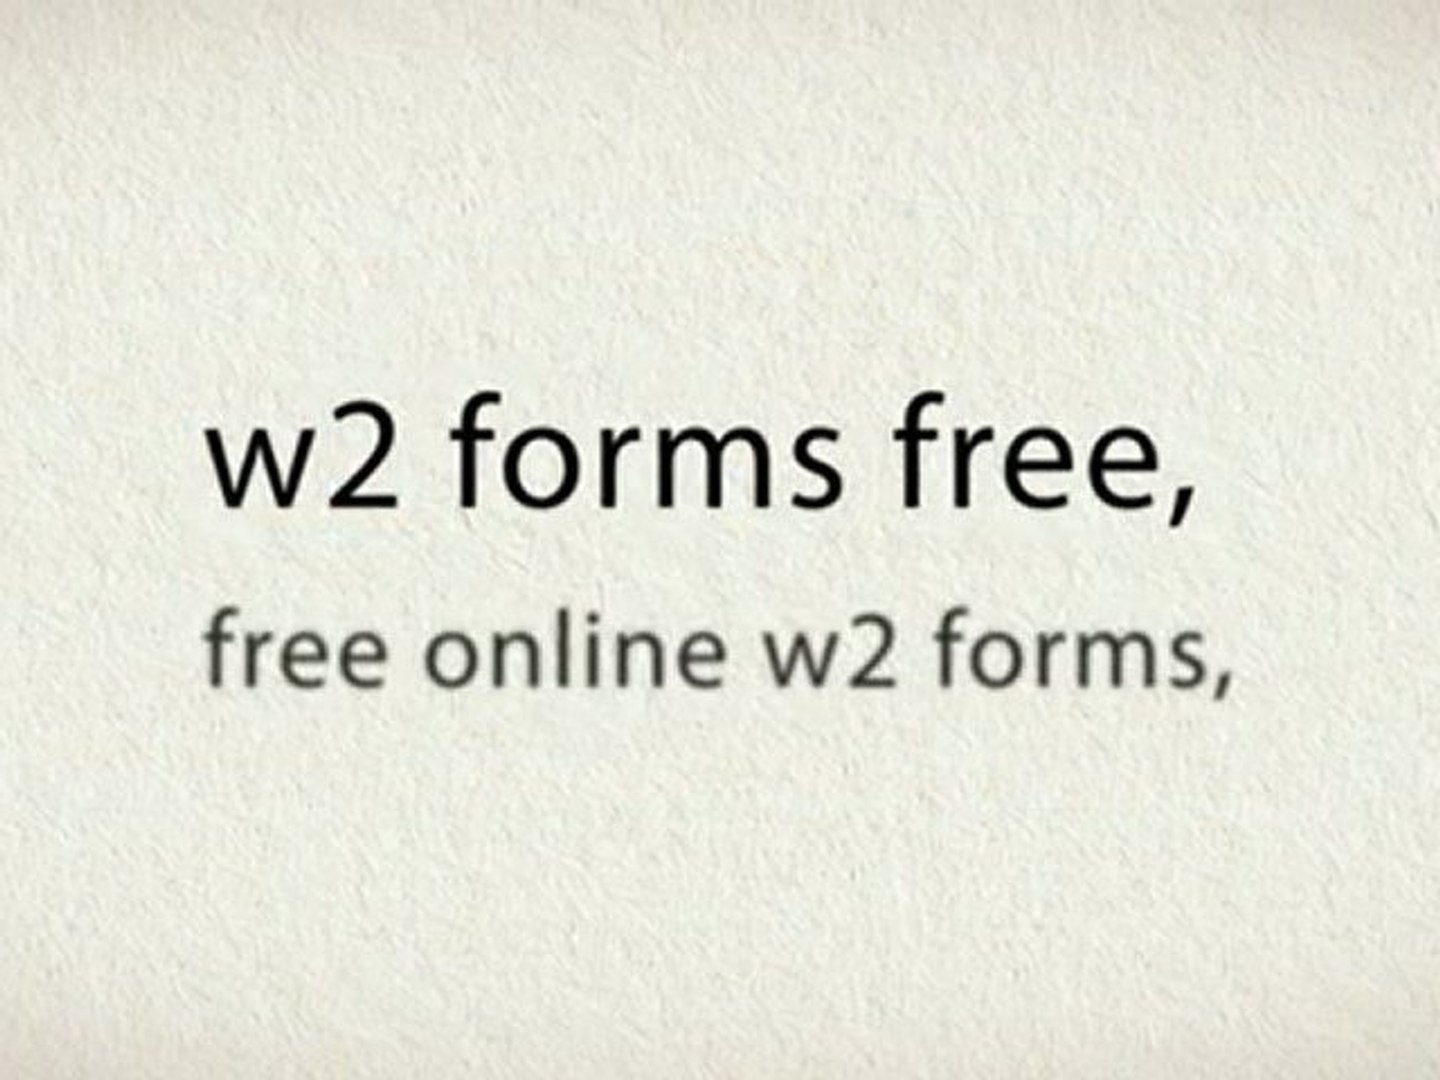 Past W2 Forms Online Free